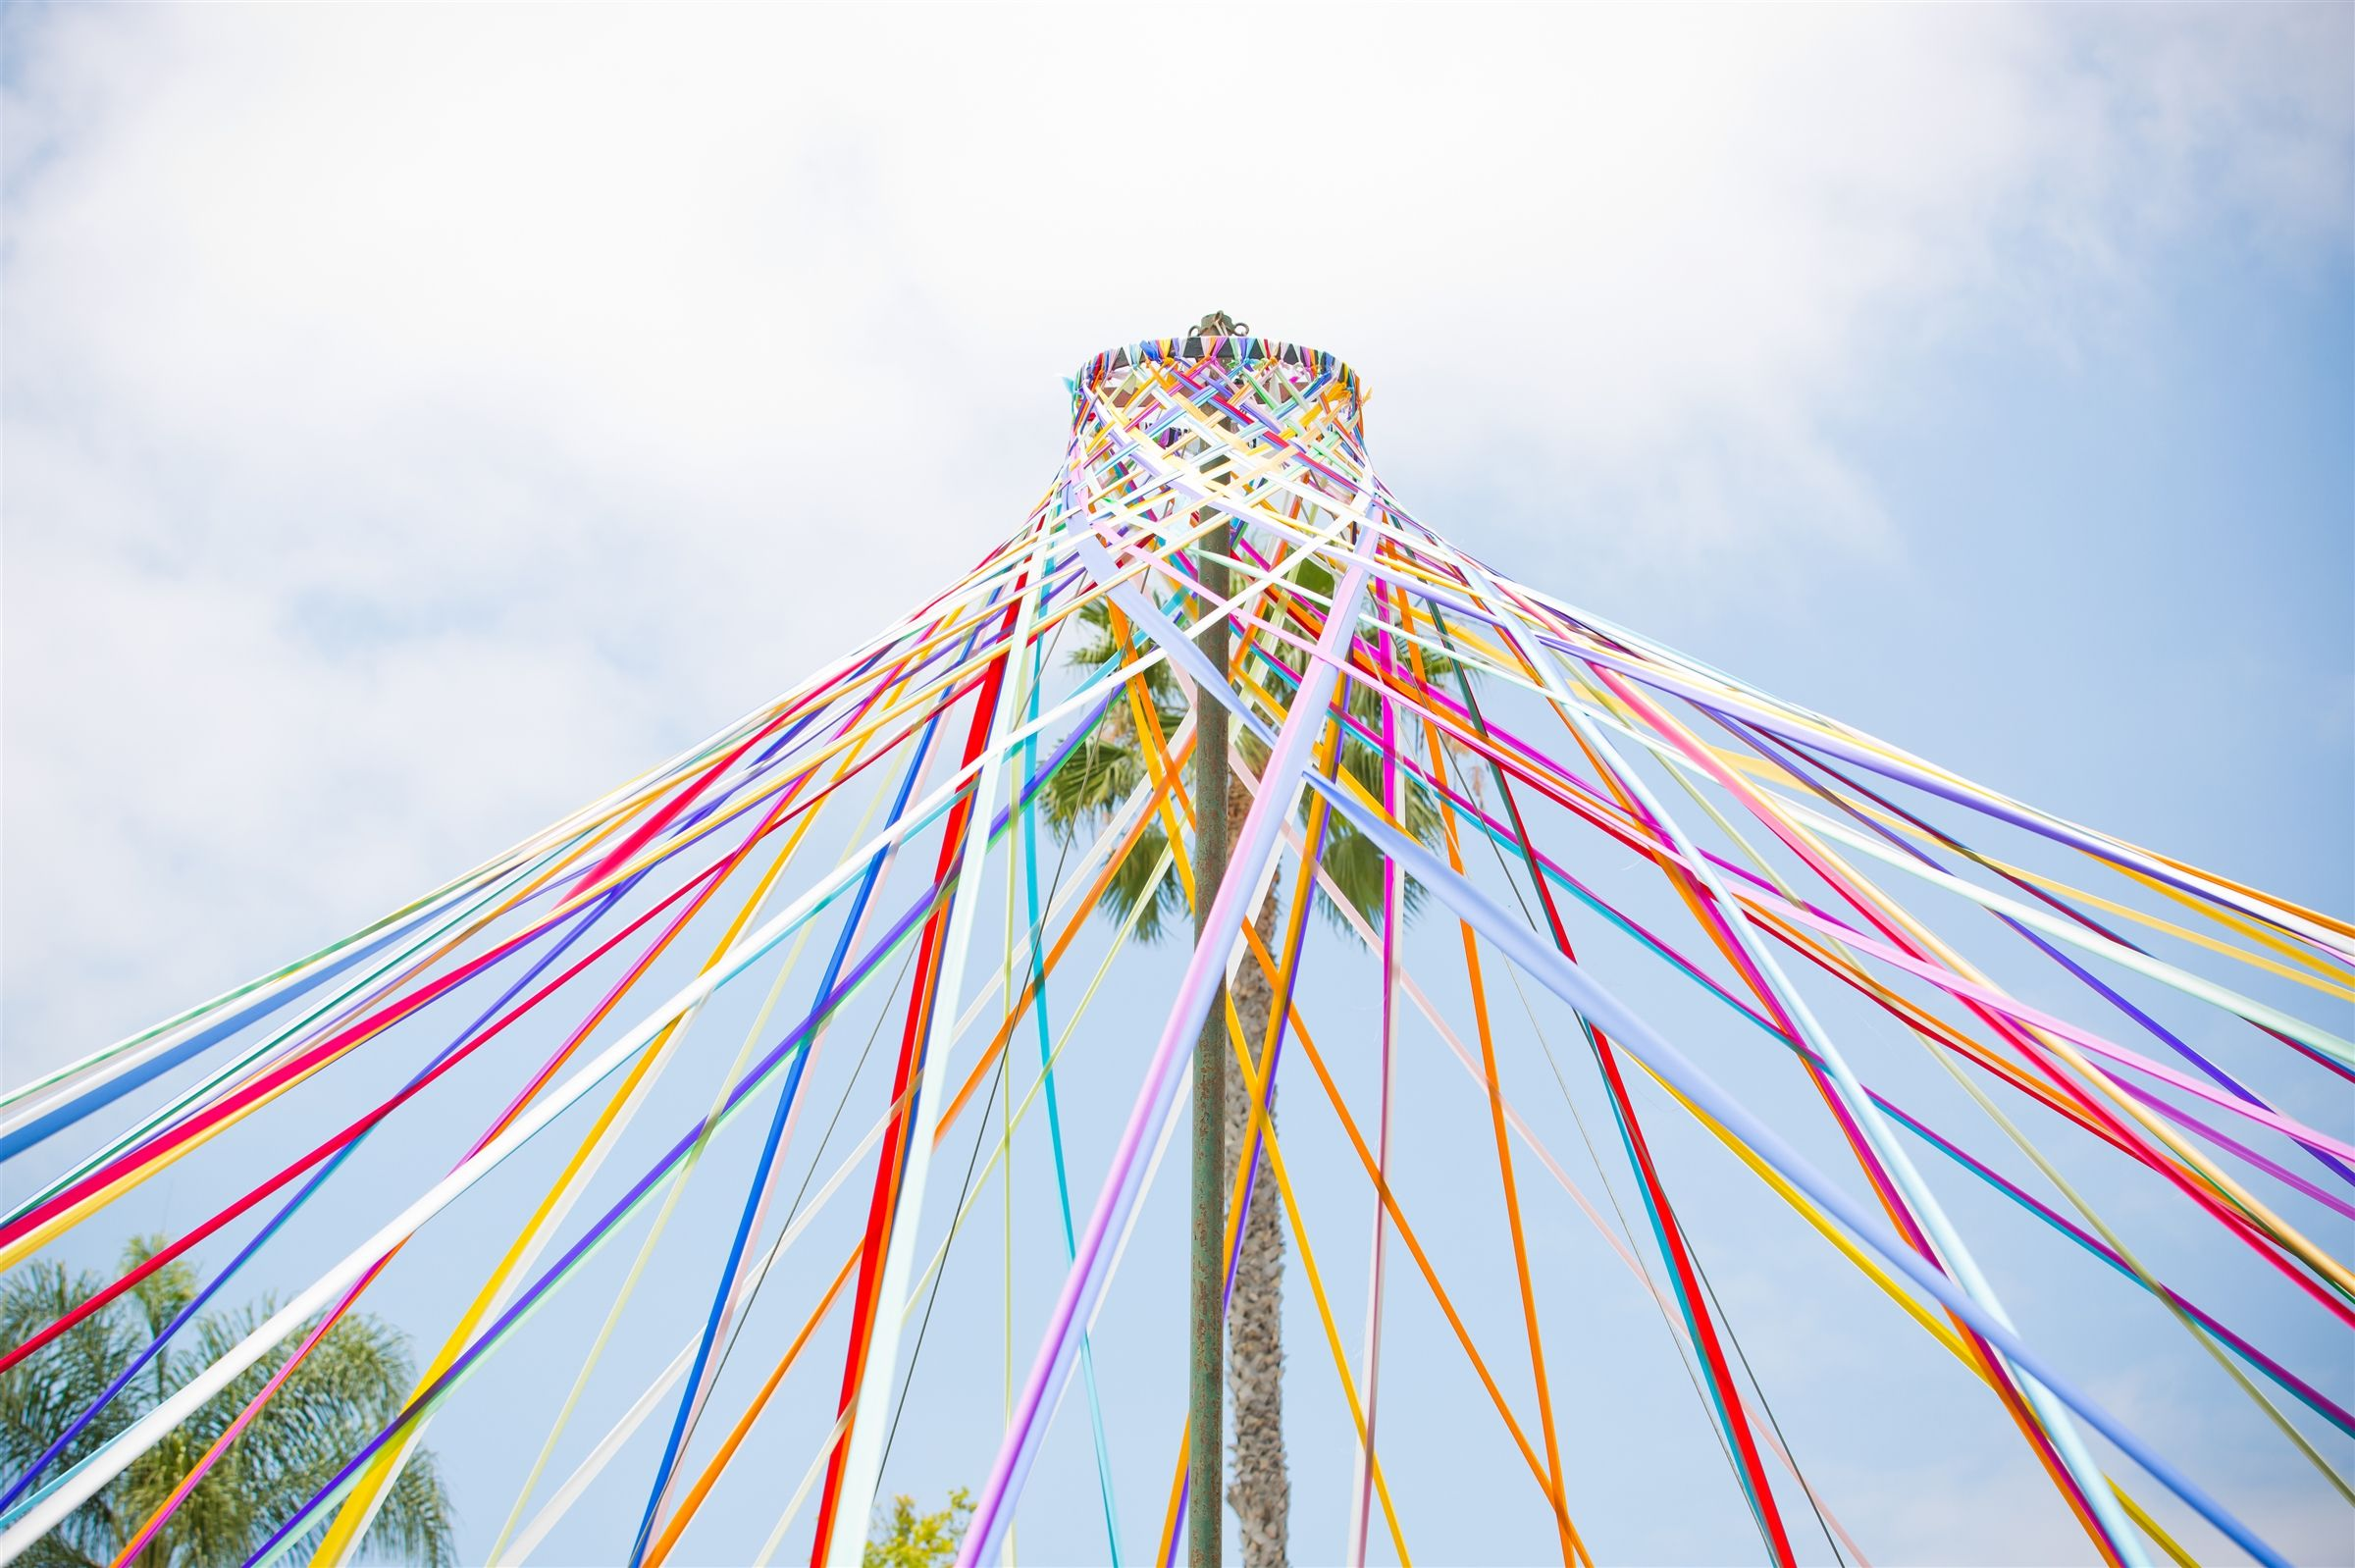 The Maypole has been part of the spring landscape in Brentwood since 1981 when it was originally installed by an anonymous benefactor. Every spring, it appears on Archer's front lawn and on Moving Up Day, 6th grade students weave the Maypole to culminate their first year at Archer.